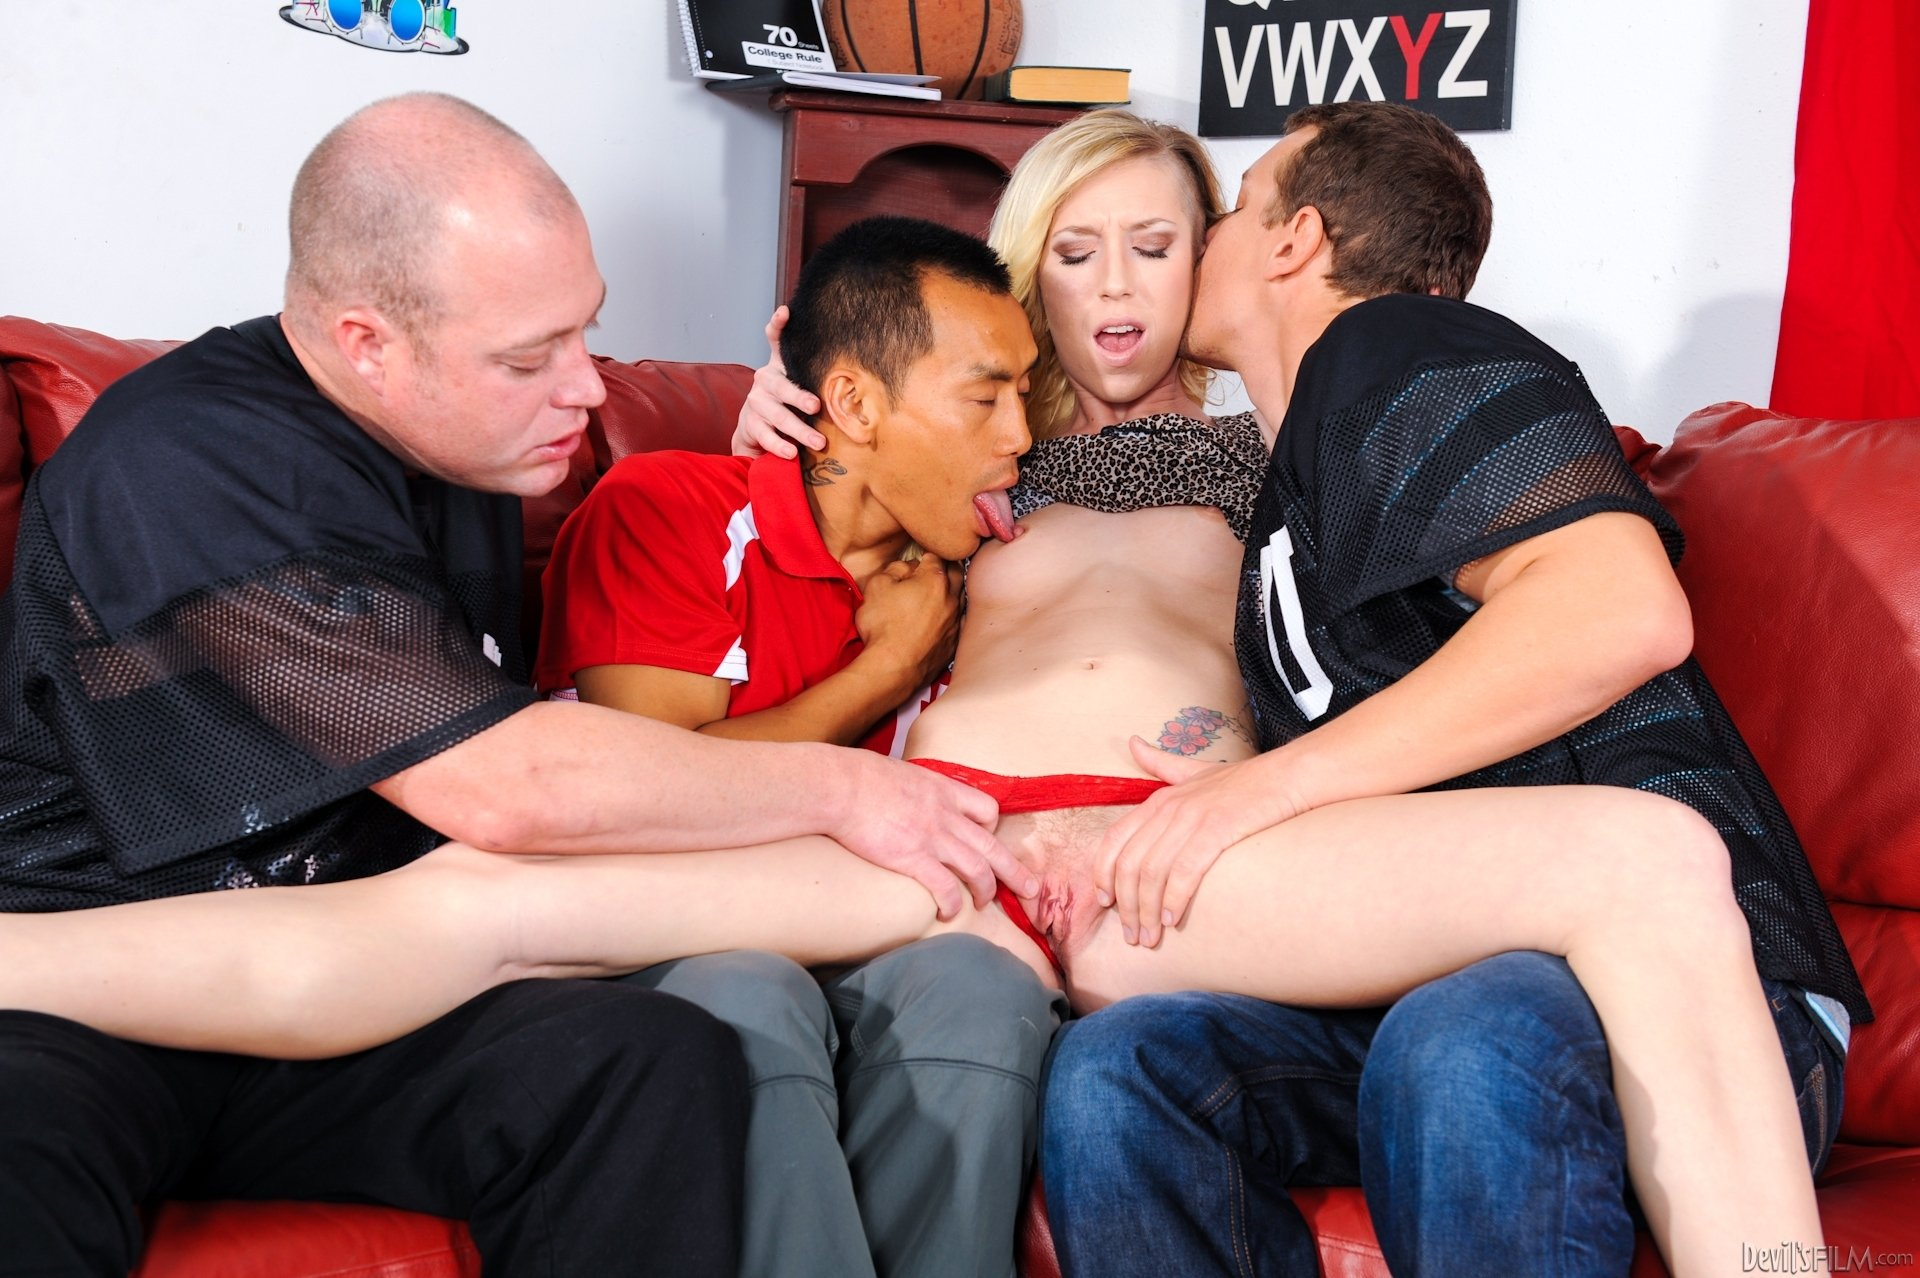 Eating creampie out of wife #1